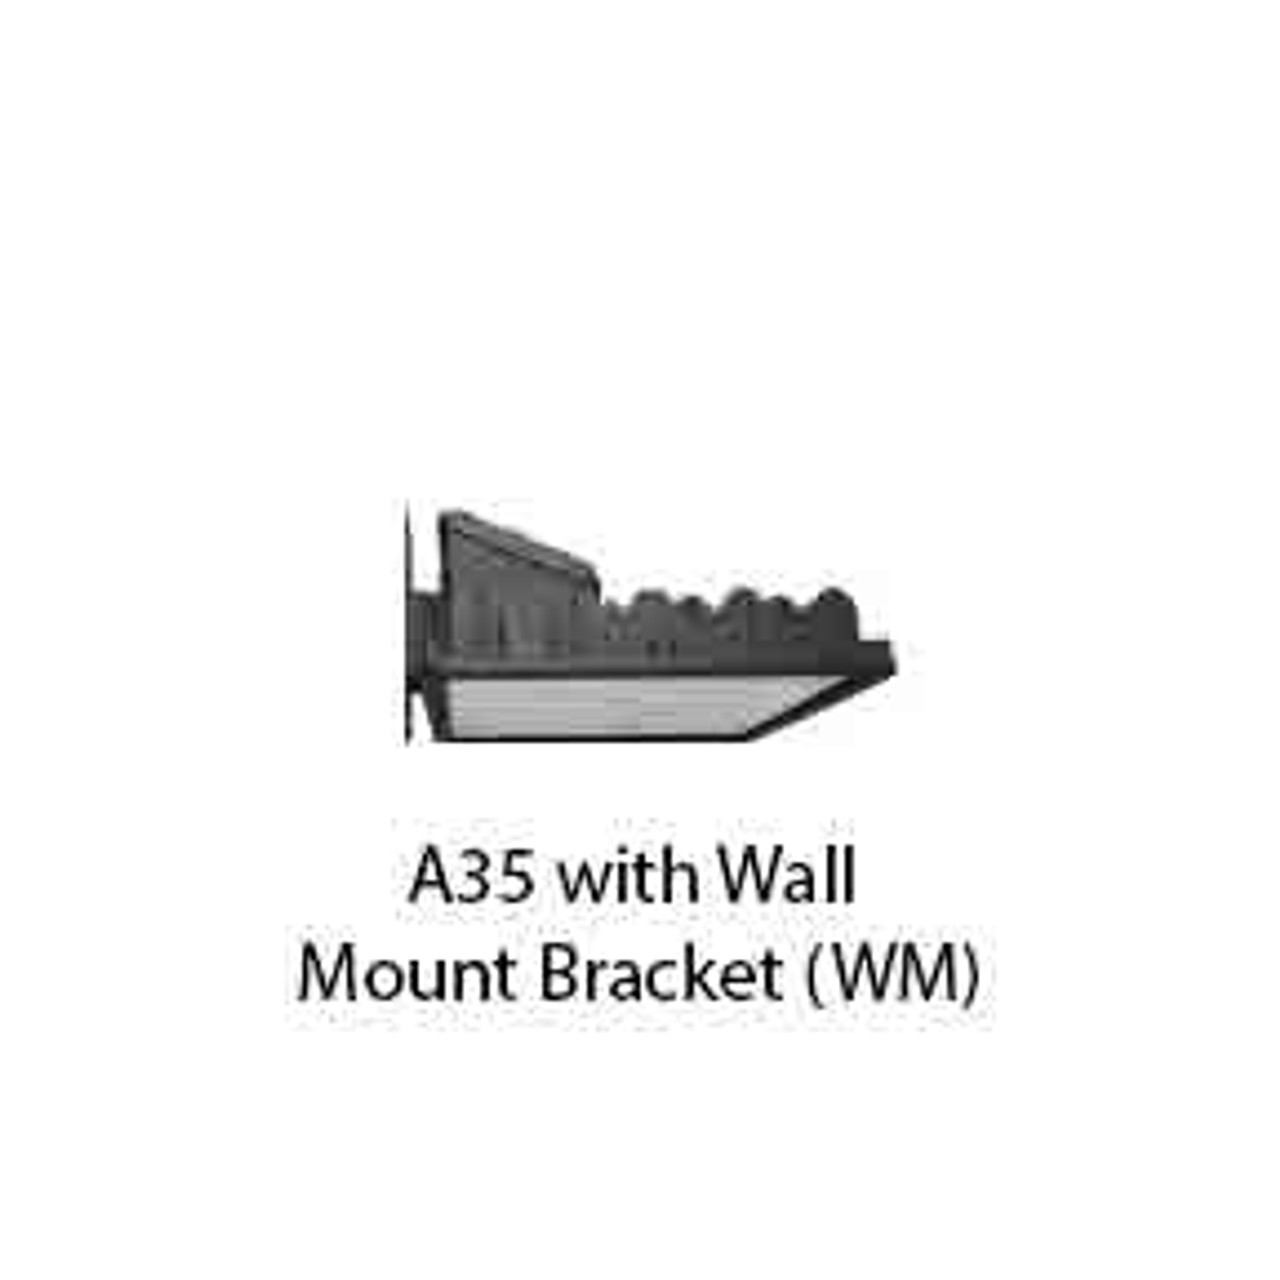 A35 with Wall Mount Bracket (WM)